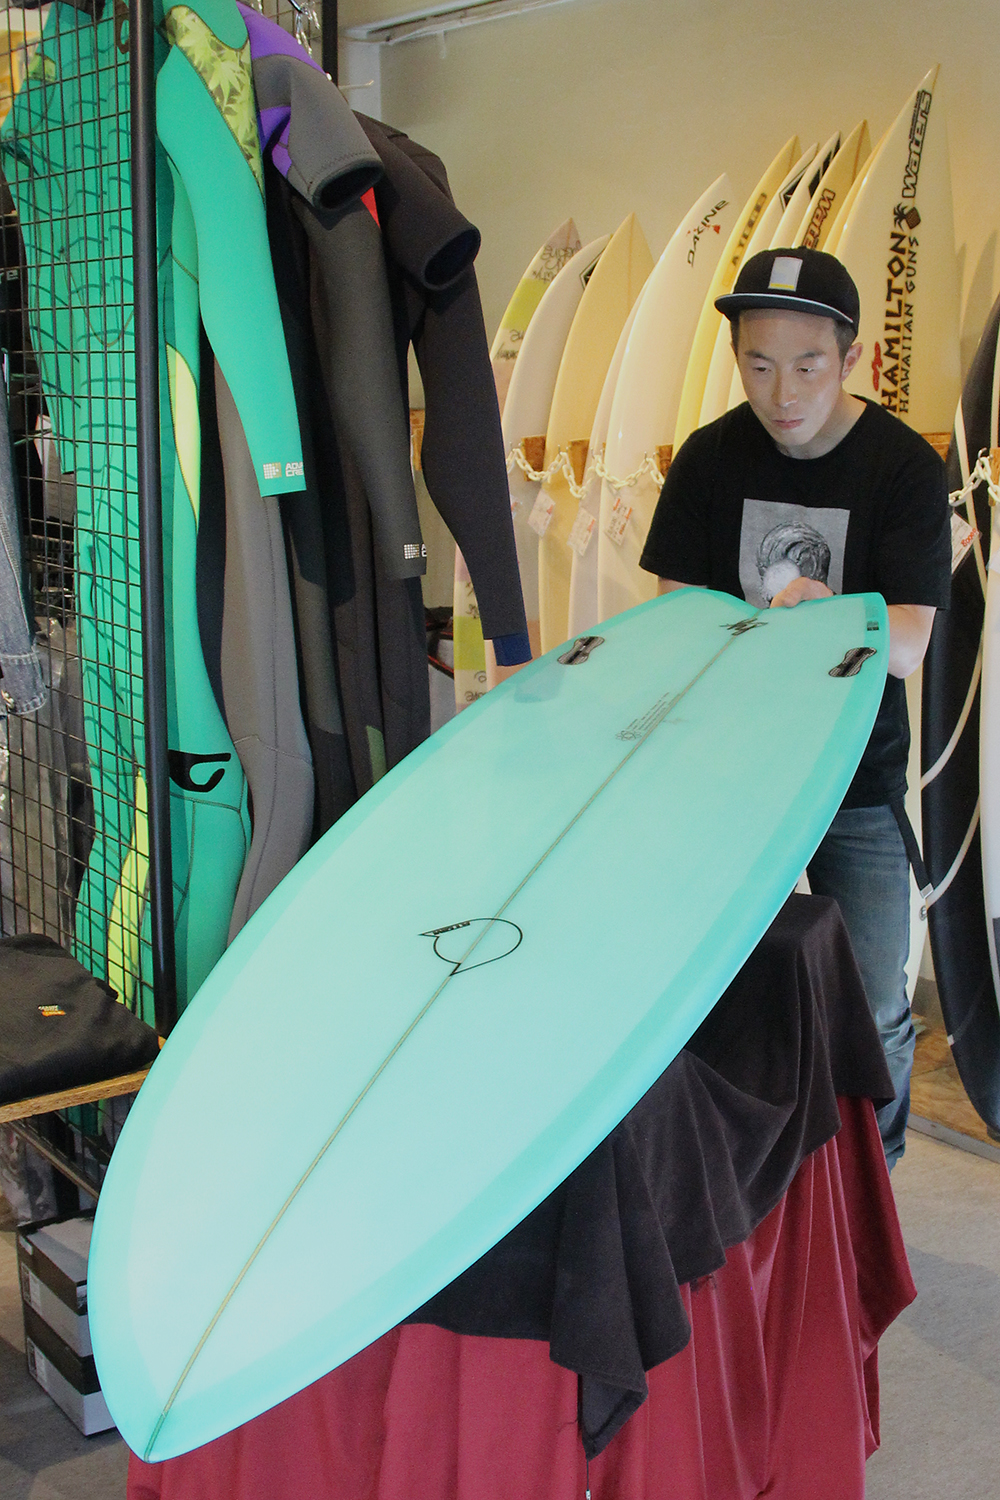 ATOM Surfboard Mach-ll model